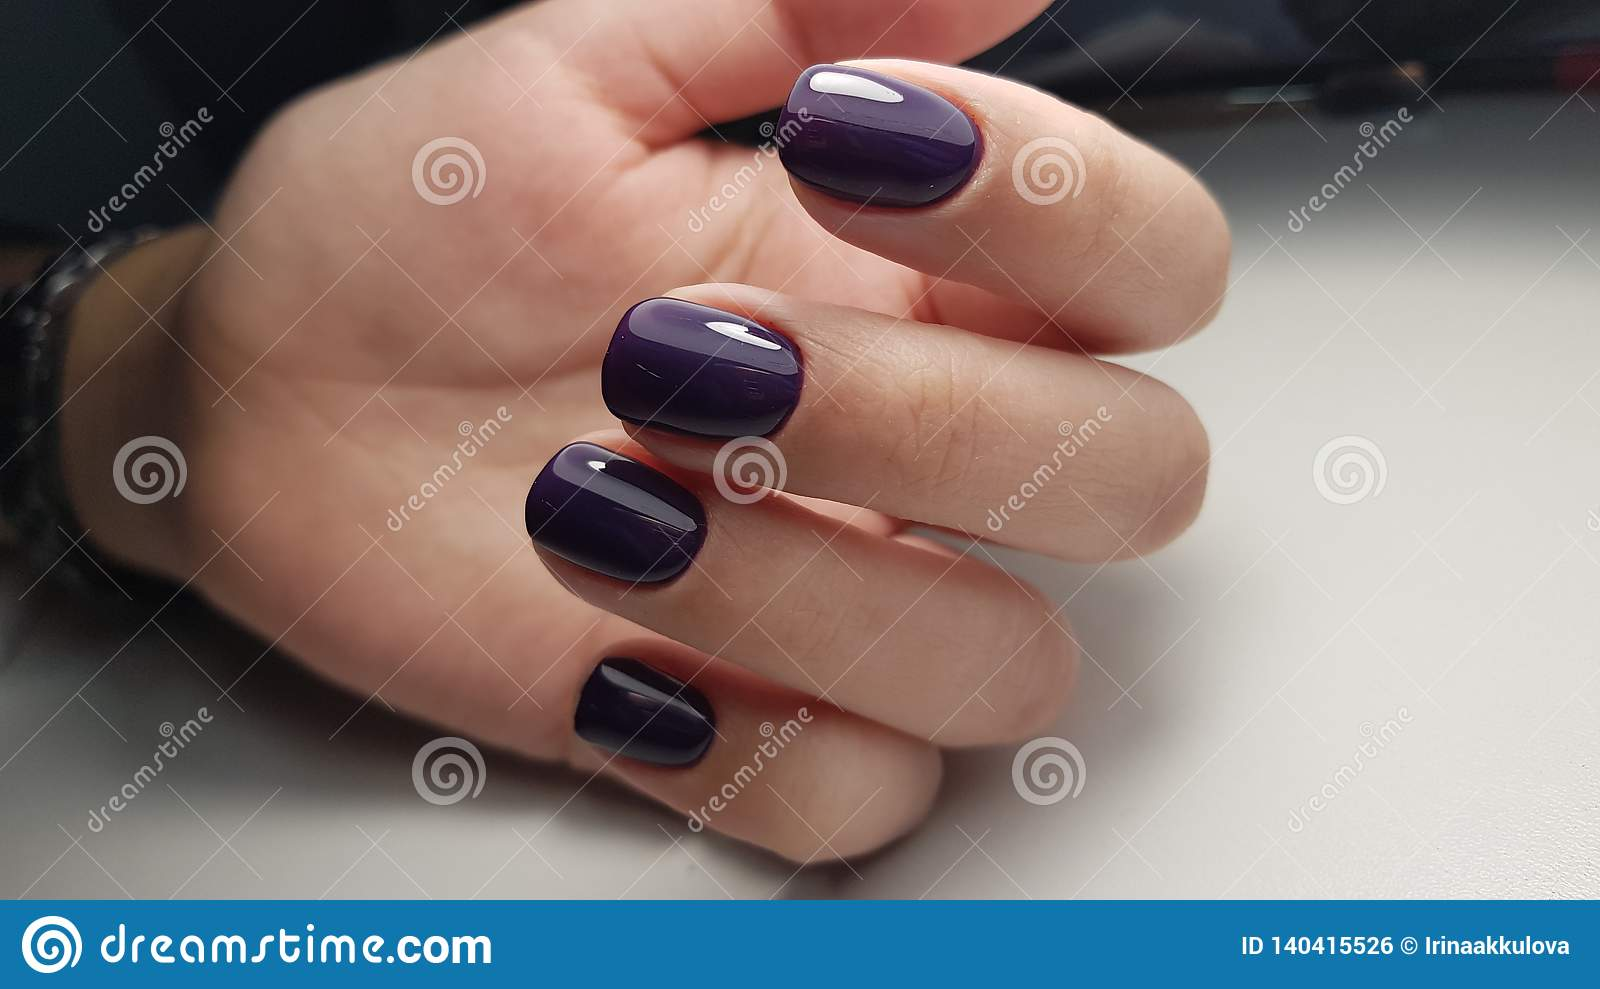 Gel polish nice color stock photo. Image of design, nice - 140415526